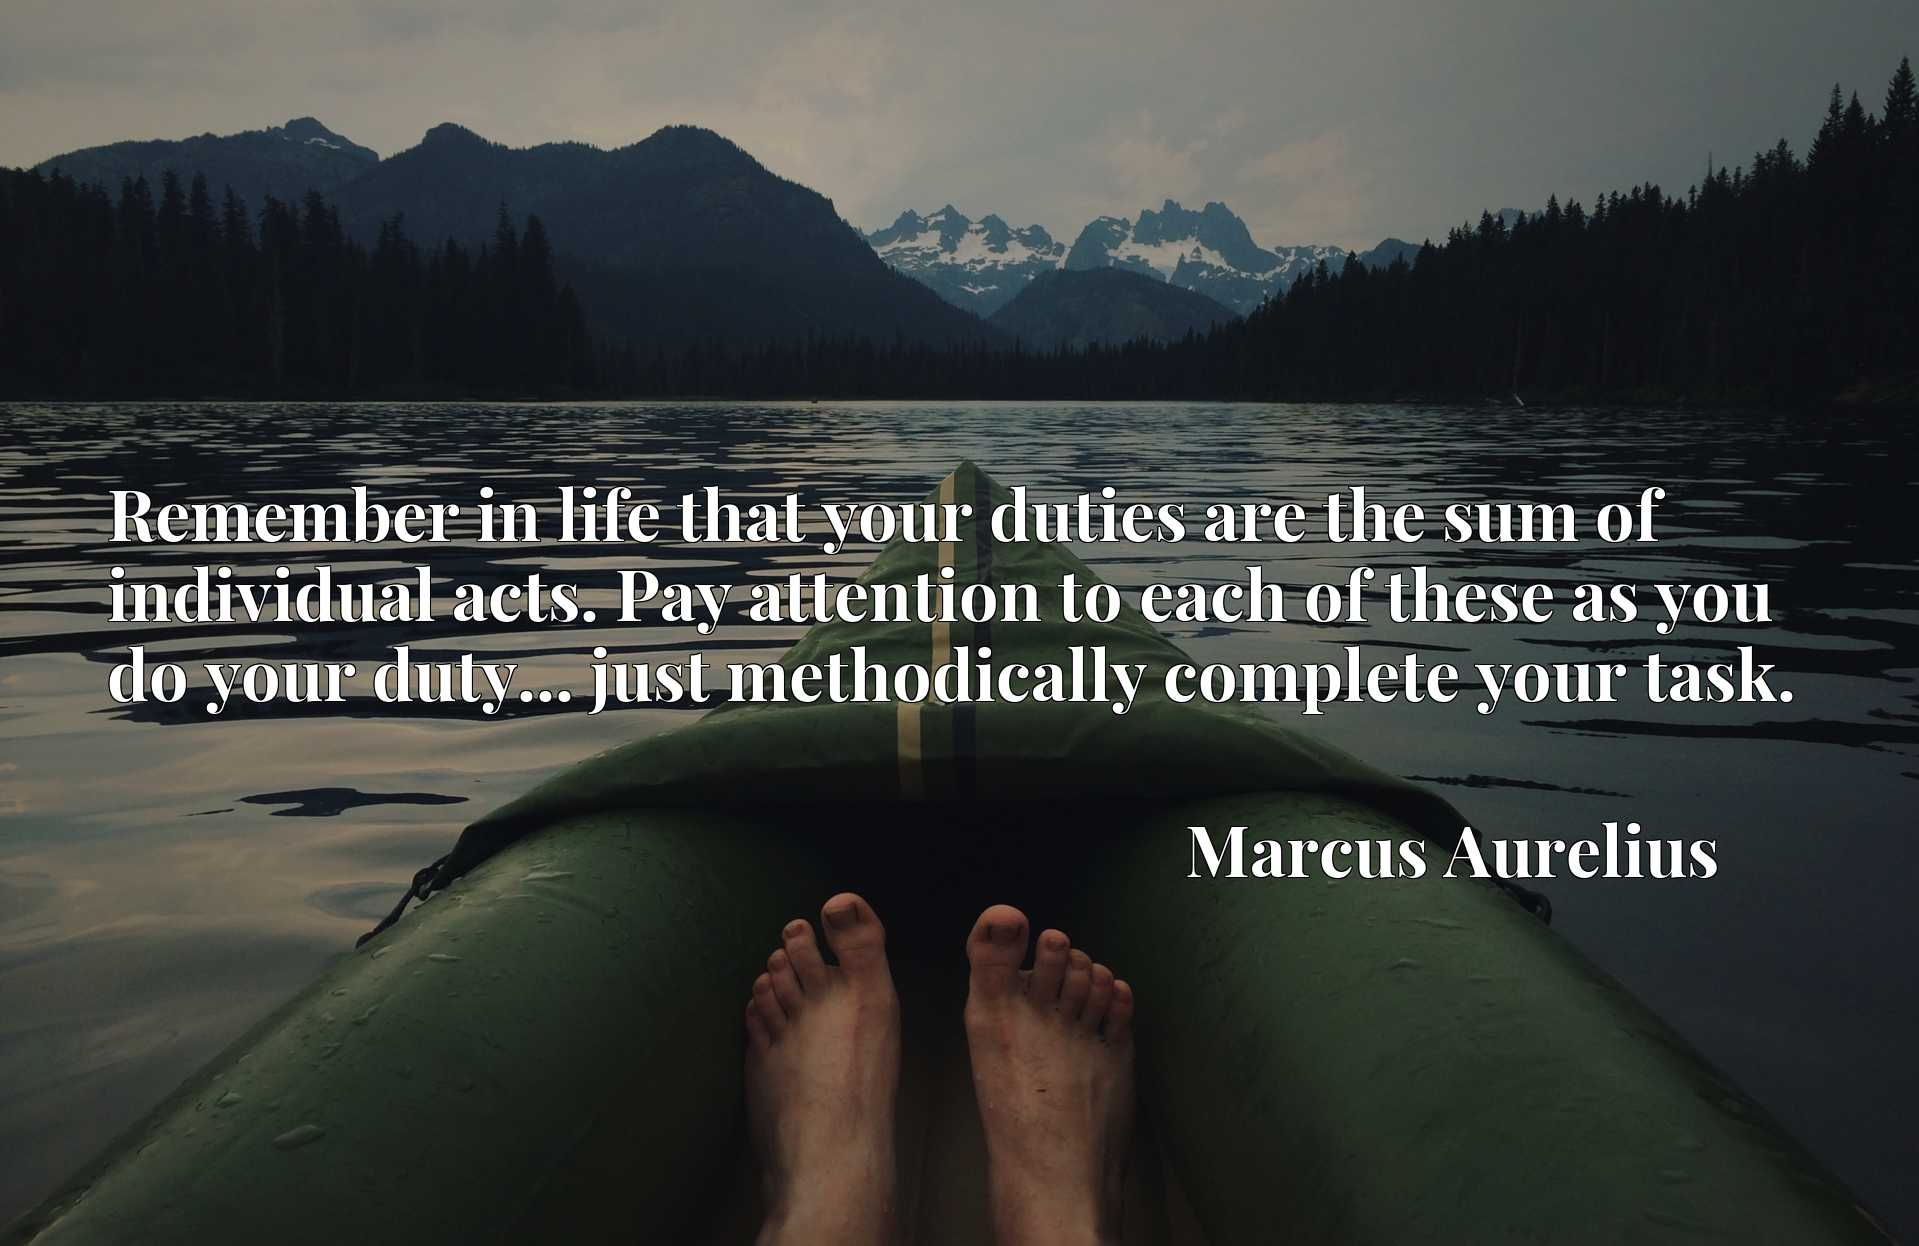 Quote Picture :Remember in life that your duties are the sum of individual acts. Pay attention to each of these as you do your duty... just methodically complete your task.